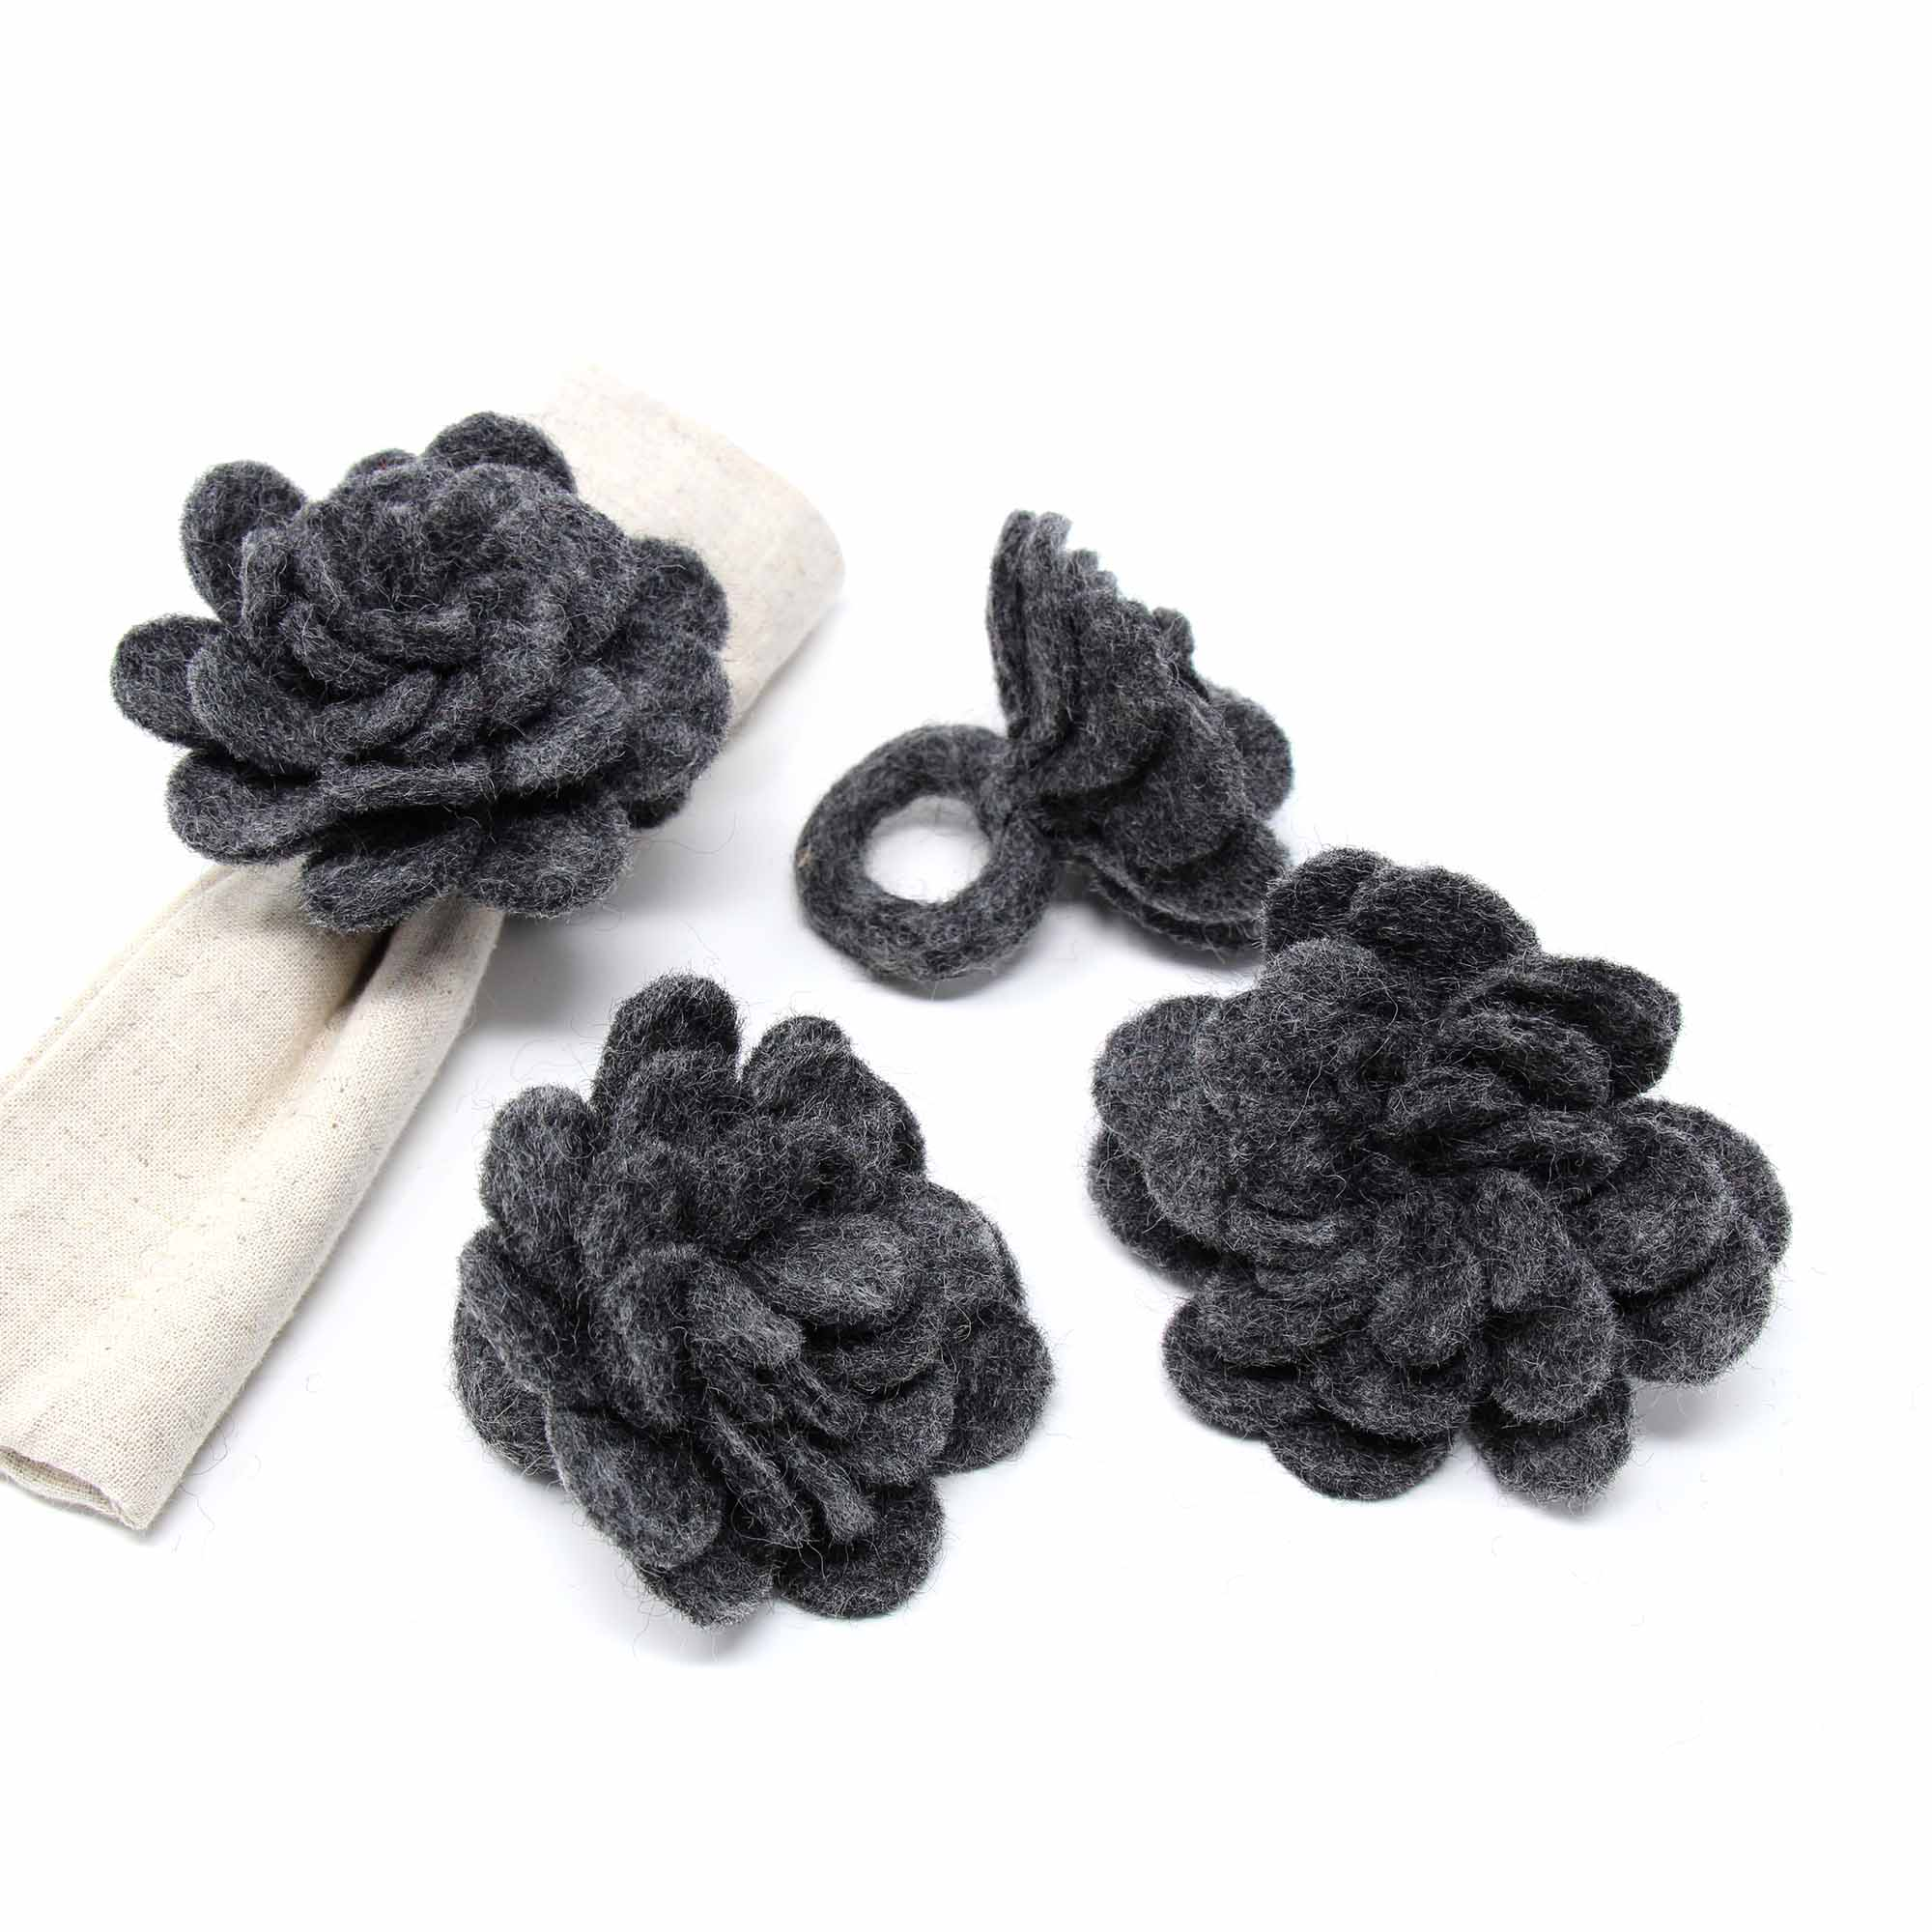 Hand Crafted Felt from Nepal: Set of 4 Napkin Rings, Black Zinnias